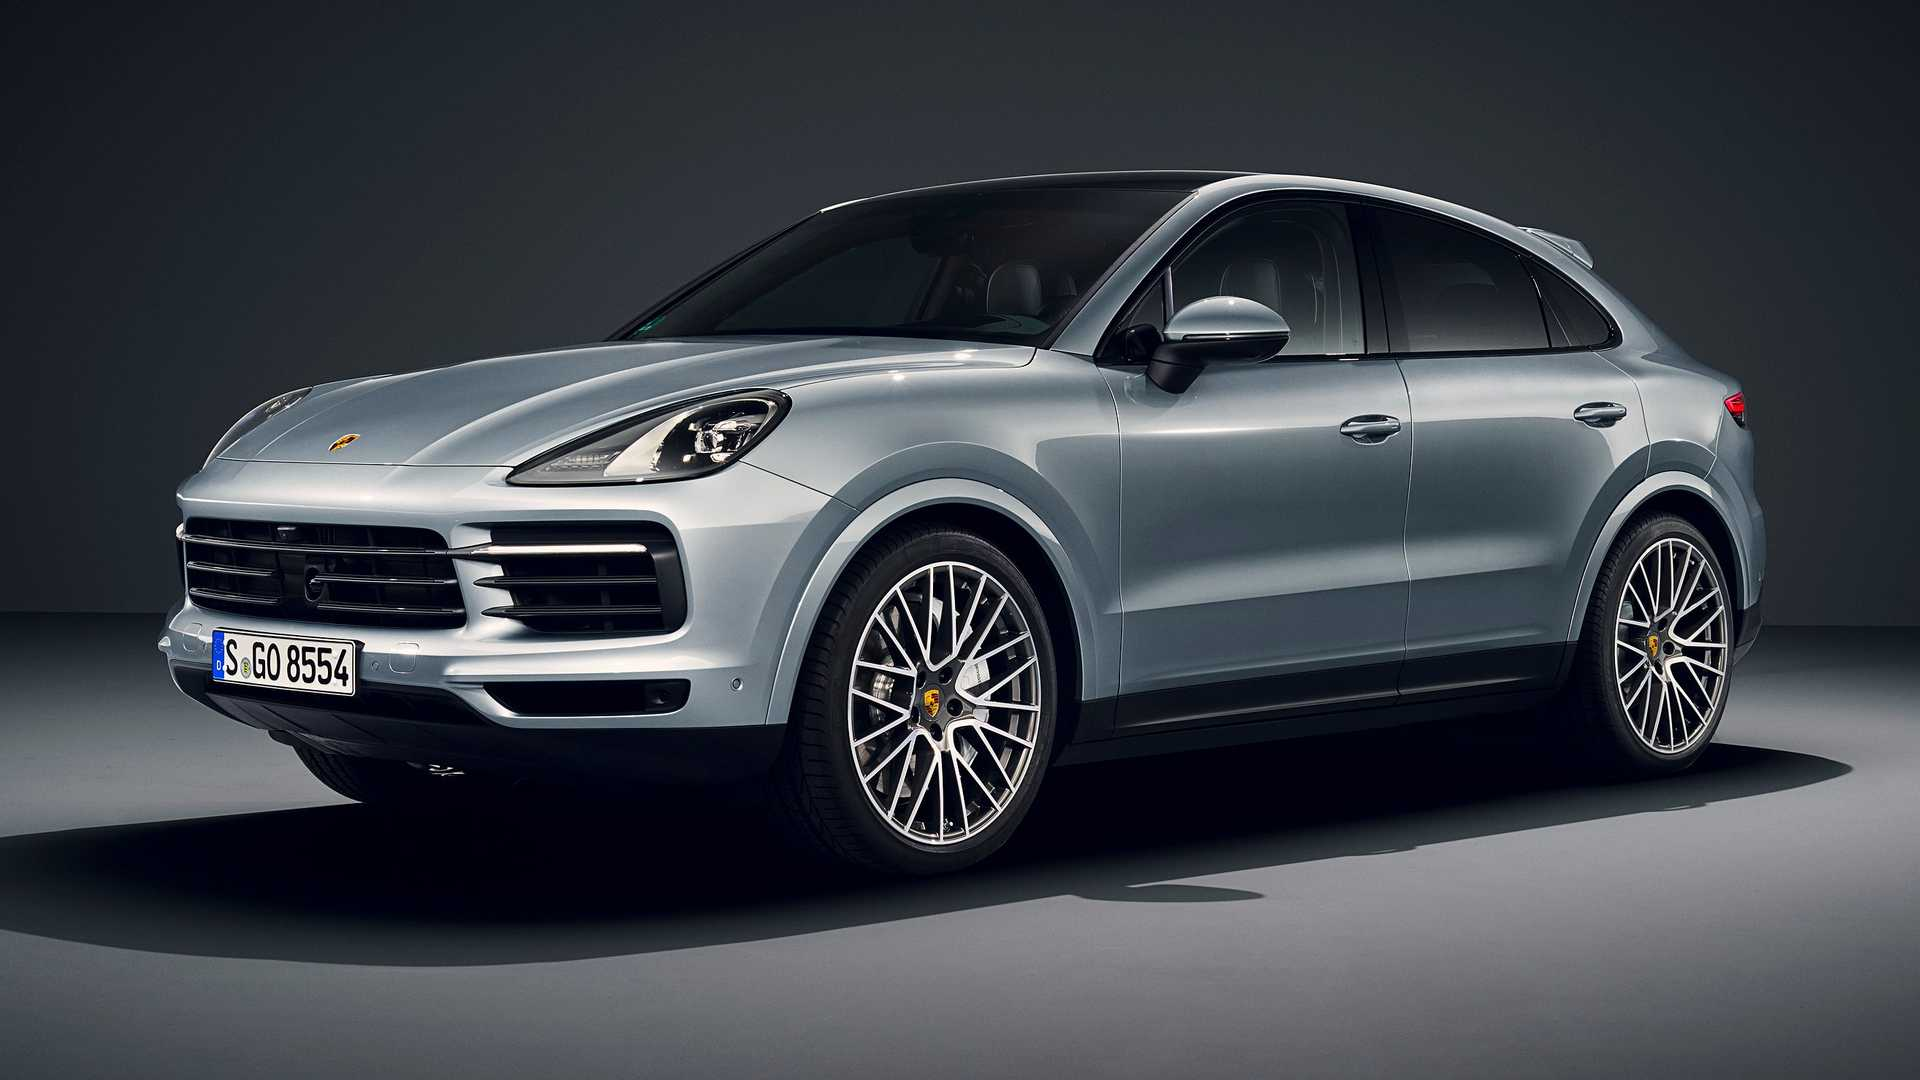 93 The Best 2020 Porsche Cayenne Model Specs And Review